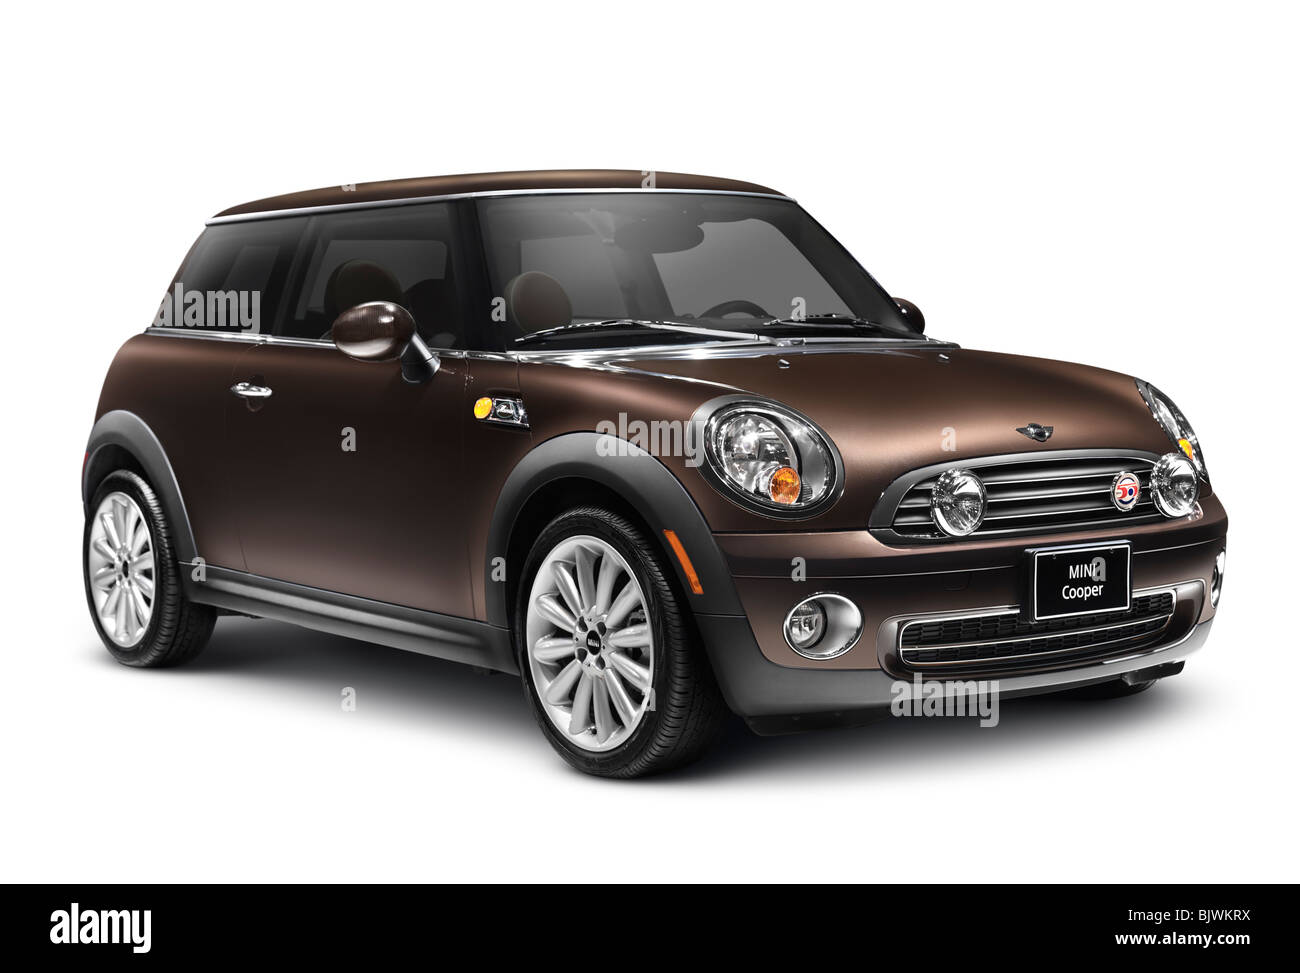 2010 Mini Cooper 50 Mayfair location with clipping path isolé sur fond blanc Photo Stock